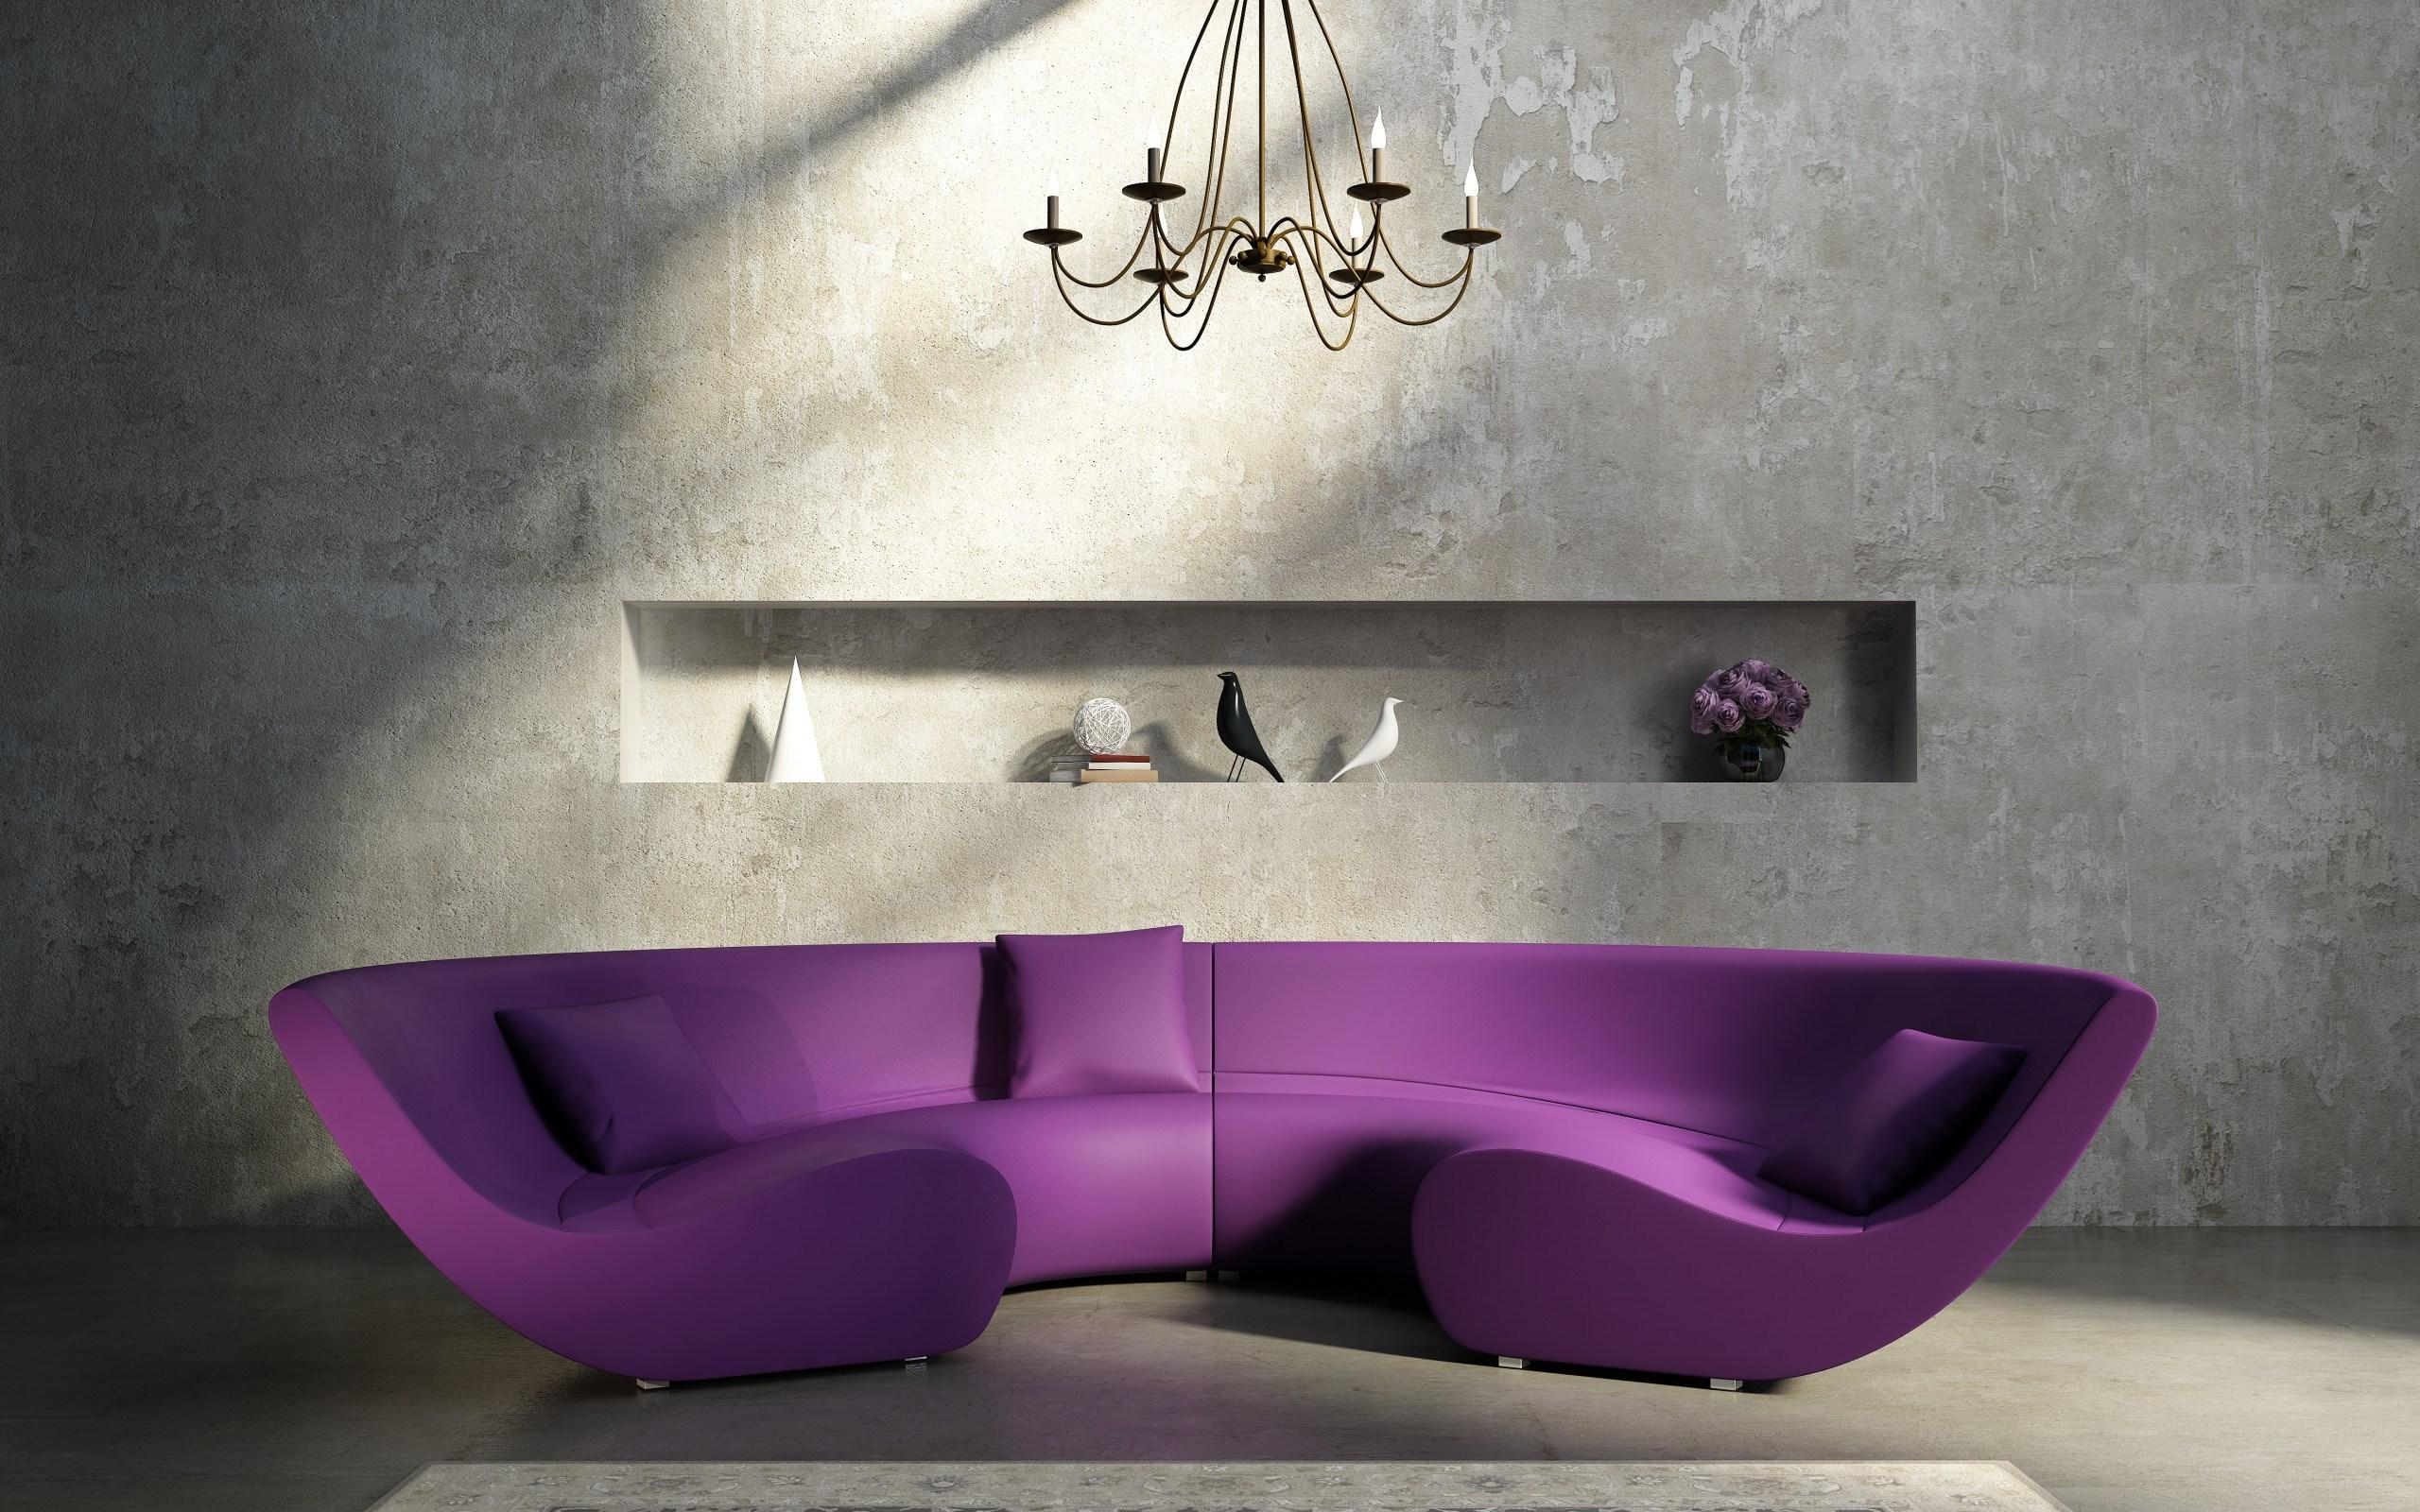 interior-half-round-purple-leather-sofa-and-square-cushions-on-grey-floor-added-by-black-chandelier-on-ceiling-entrancing-purple-leather-sofa-to-your-modern-living-room-ideas